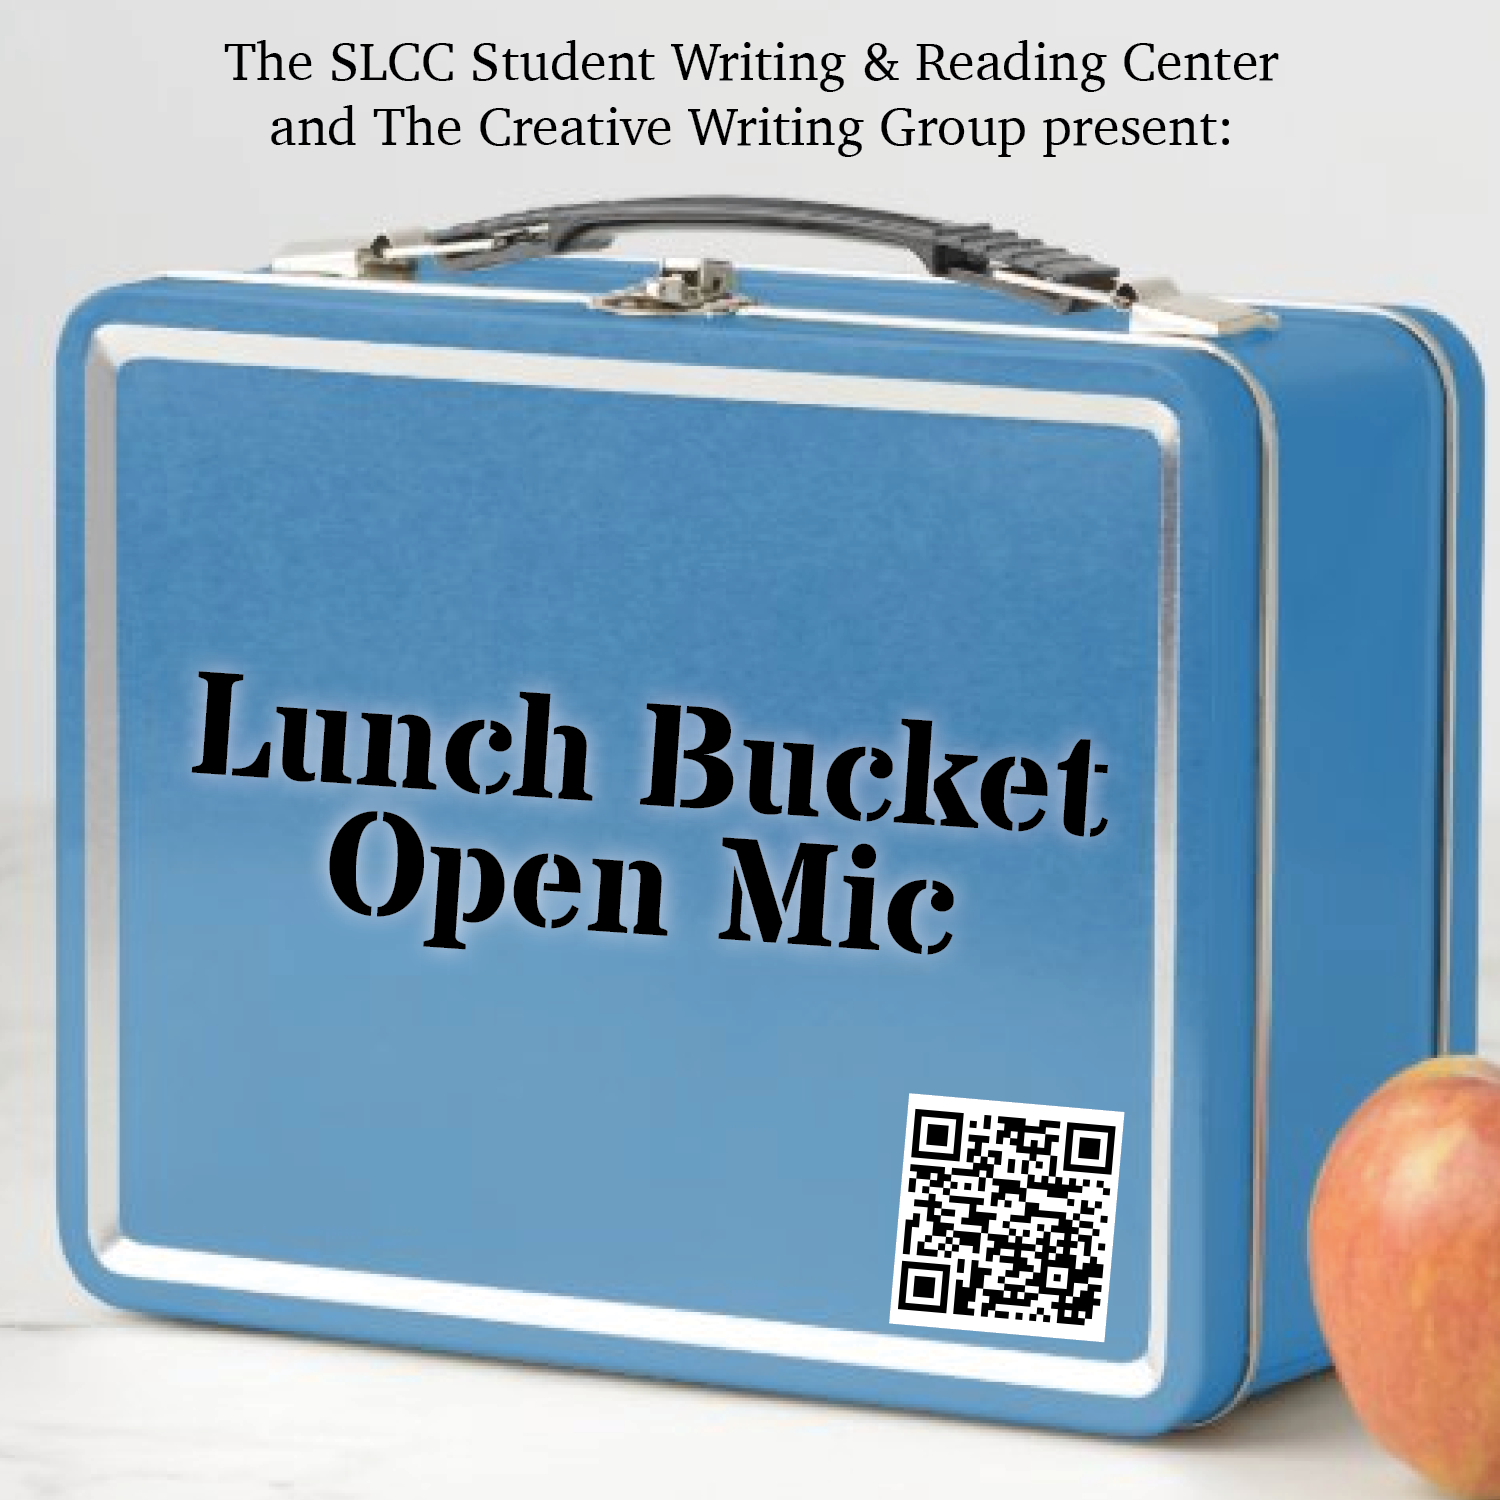 Lunch Bucket Open Mic (no date)